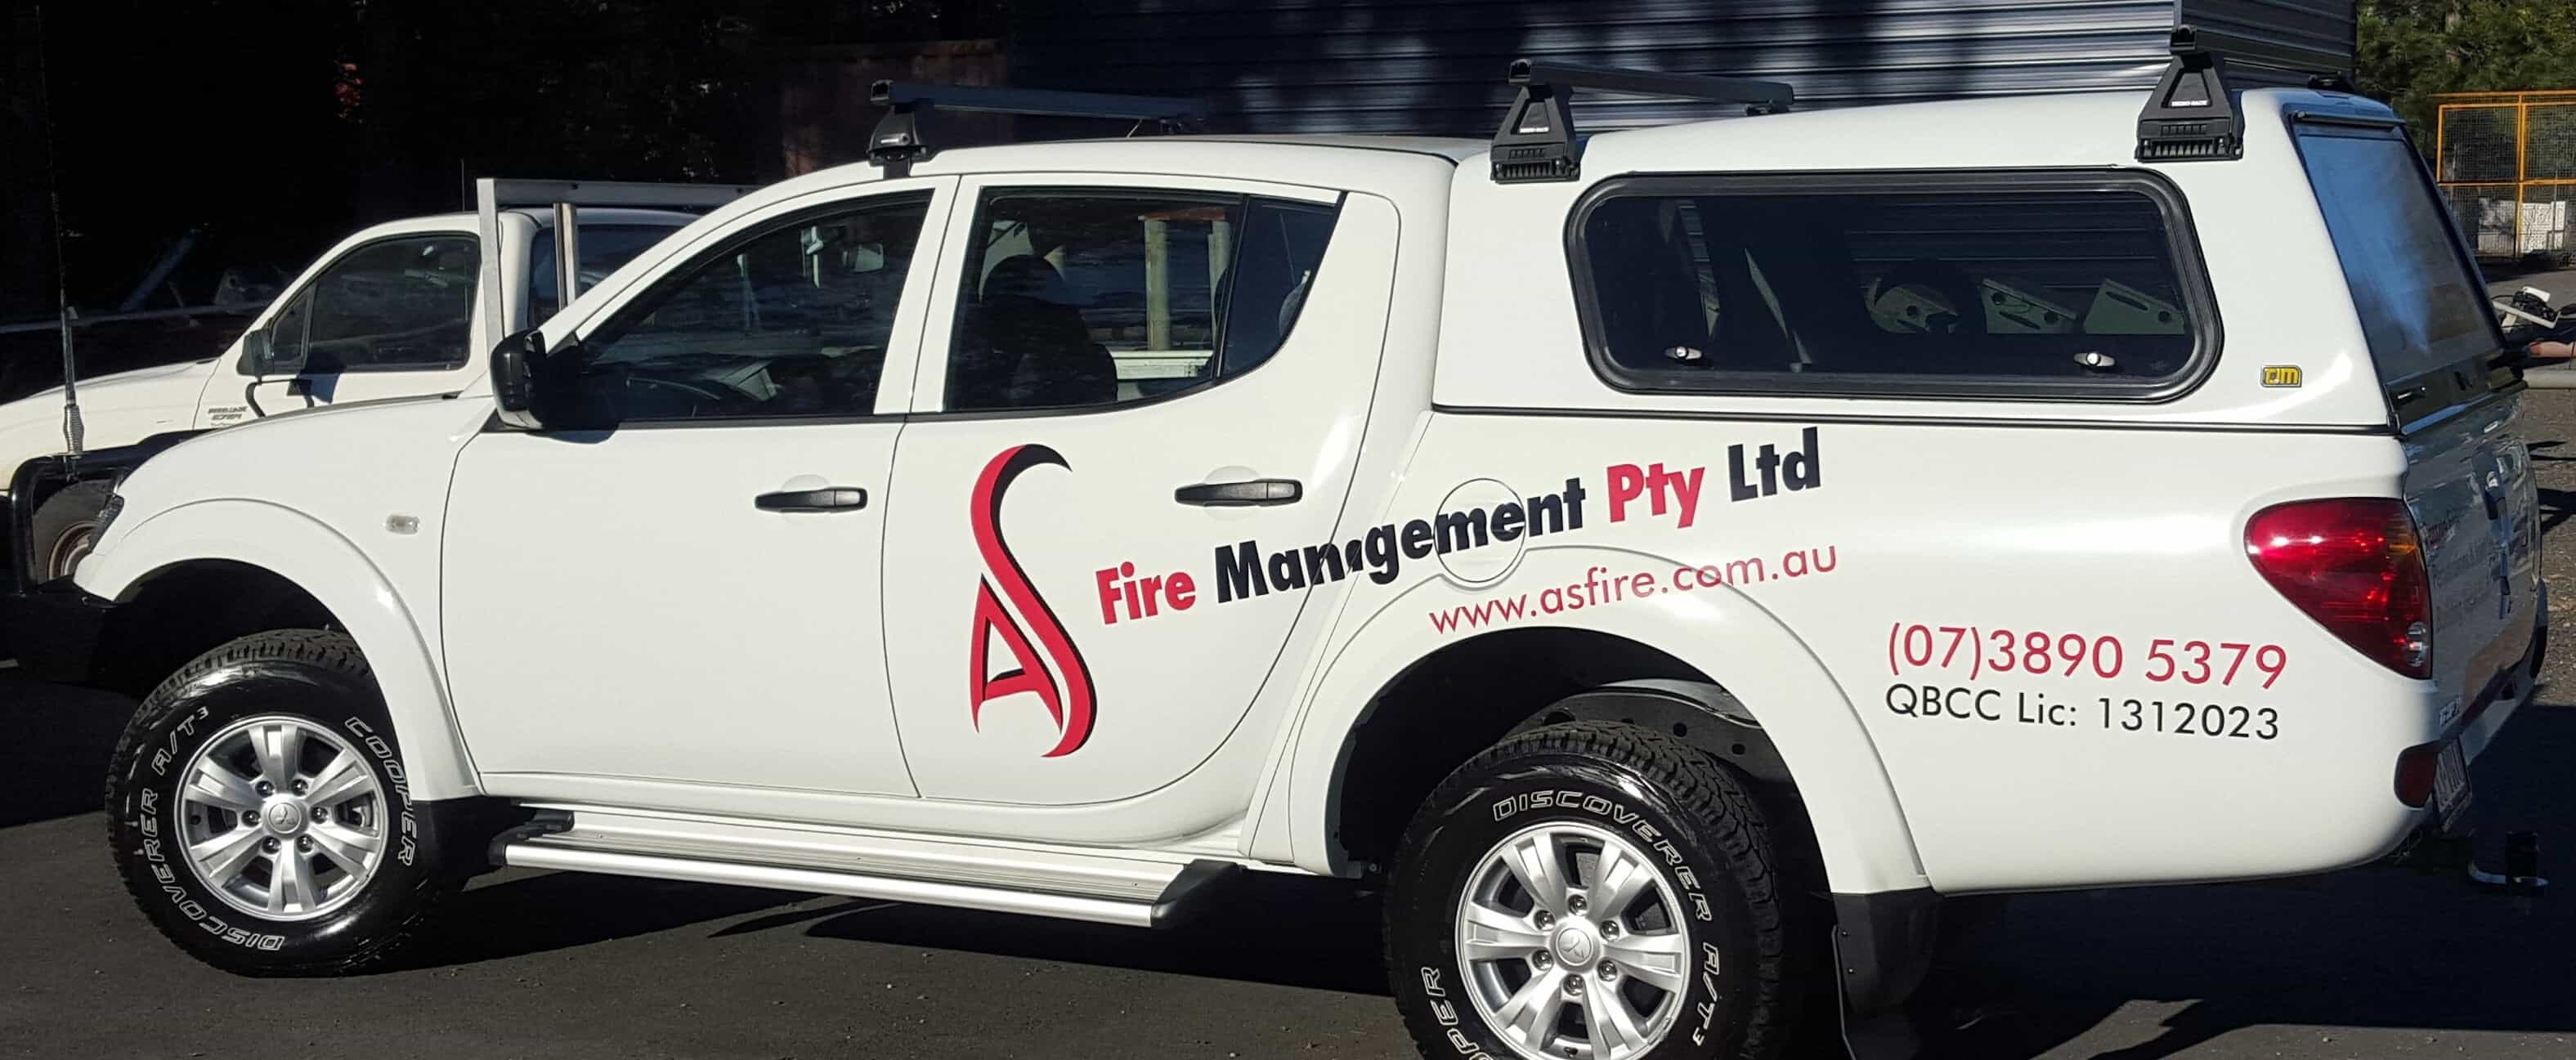 Fire Protection Services Brisbane